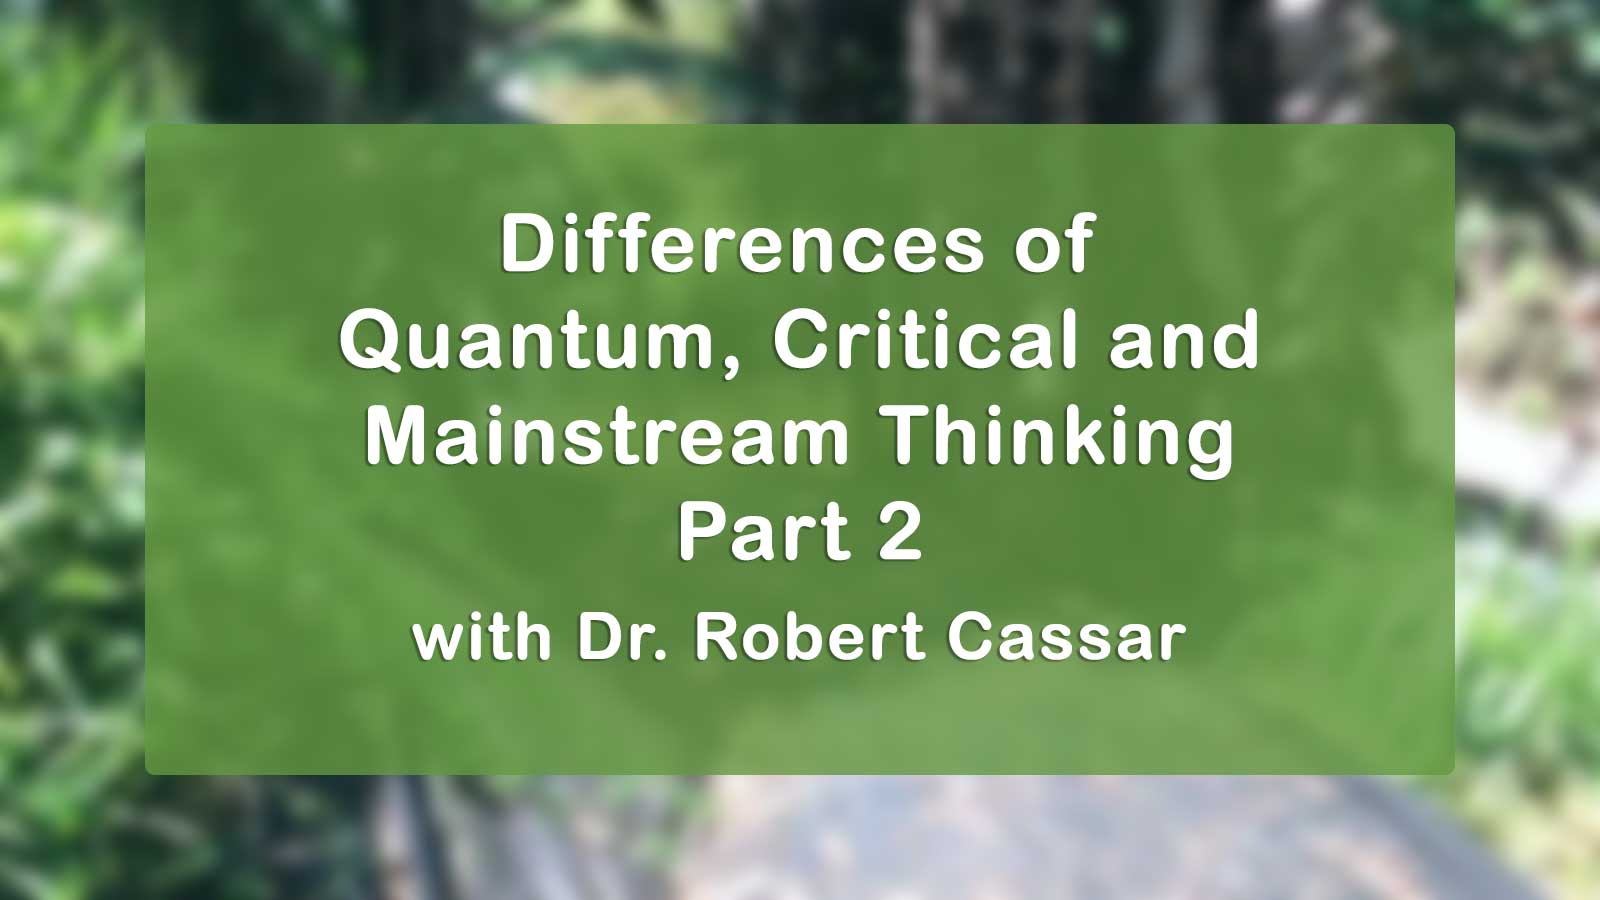 Differences of Quantum, Critical and Mainstream Thinking Part 2